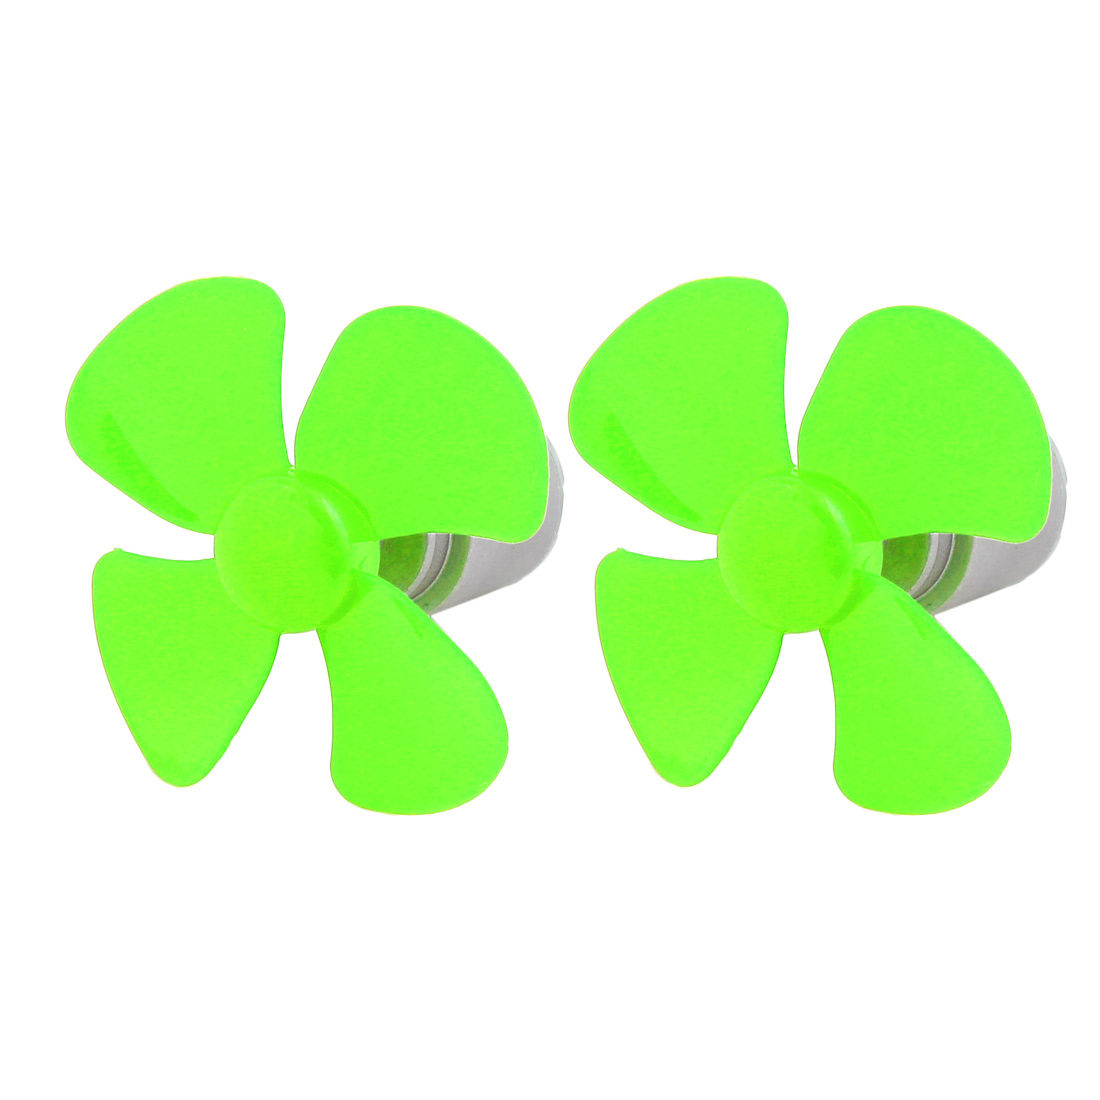 2pcs DC 3V 0.13A 11000RPM Strong Force Motor 4 Blades 56mm Green Propeller for RC Aircraft